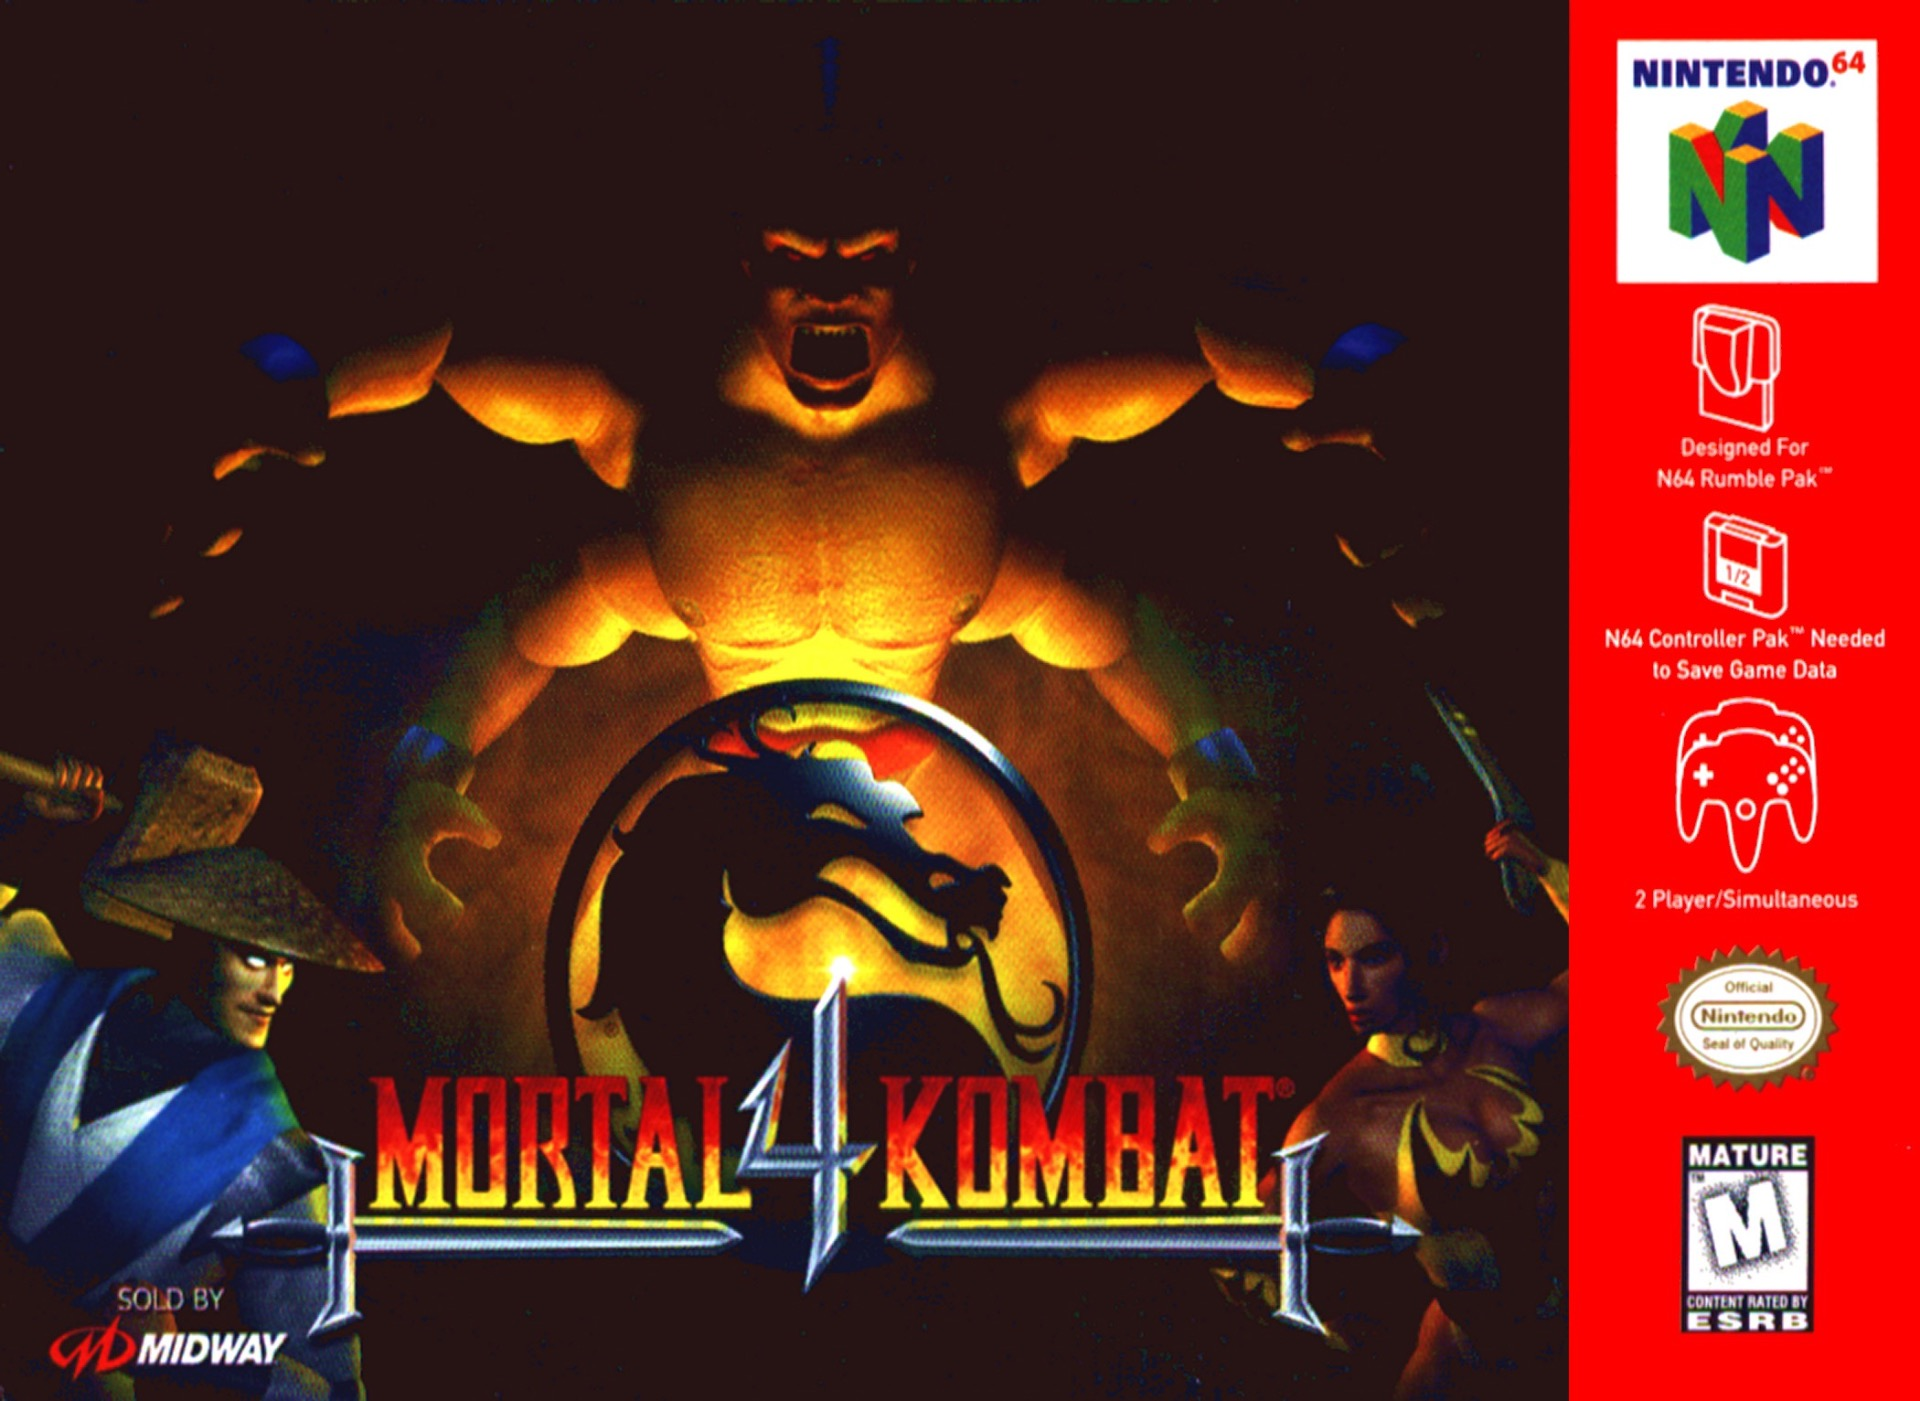 Mortal Kombat 4 on the N64.